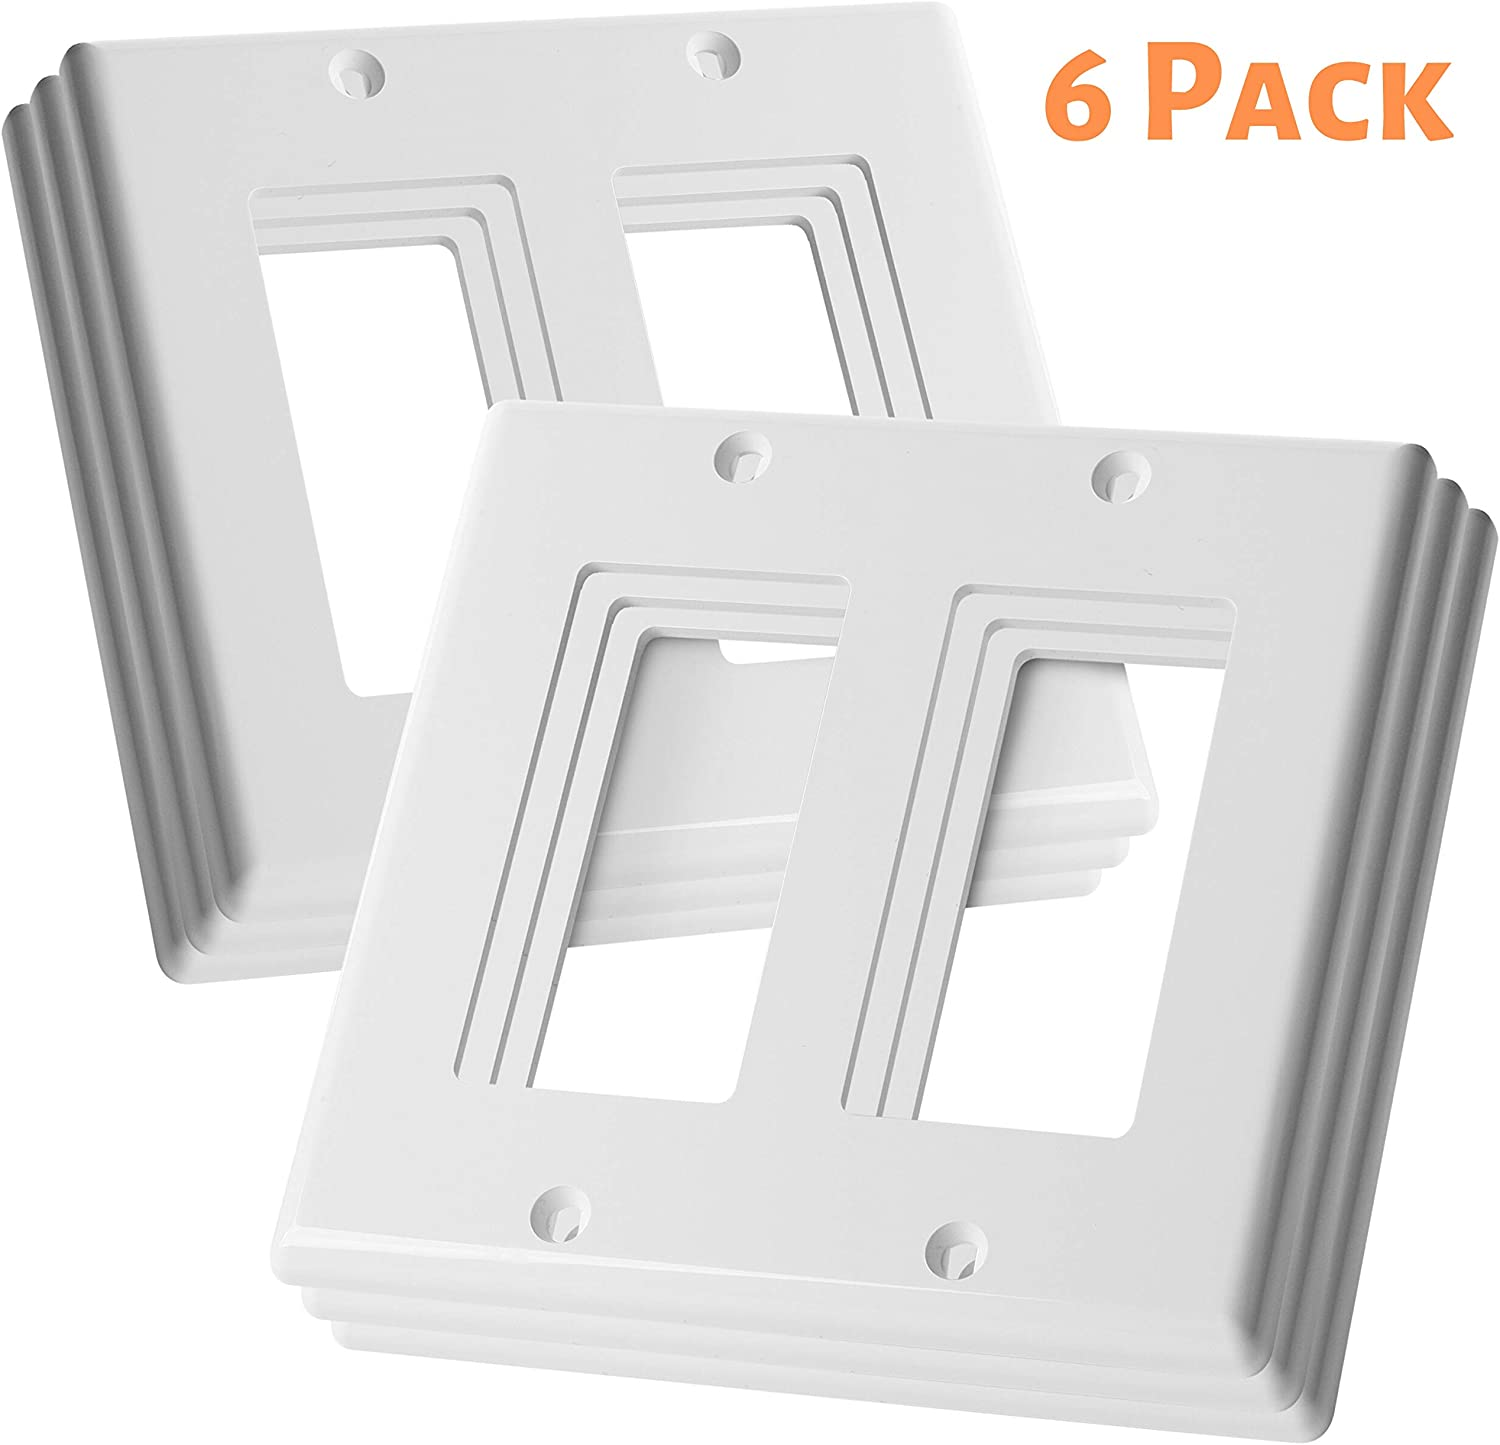 Bates Double Light Switch Plate 2 Gang Wall Plate 6 Pack Double Outlet Cover Double Switch Plate Covers Light Switch Cover 2 Gang Double Wall Plate Electrical Outlet Cover Plates Plug Cover